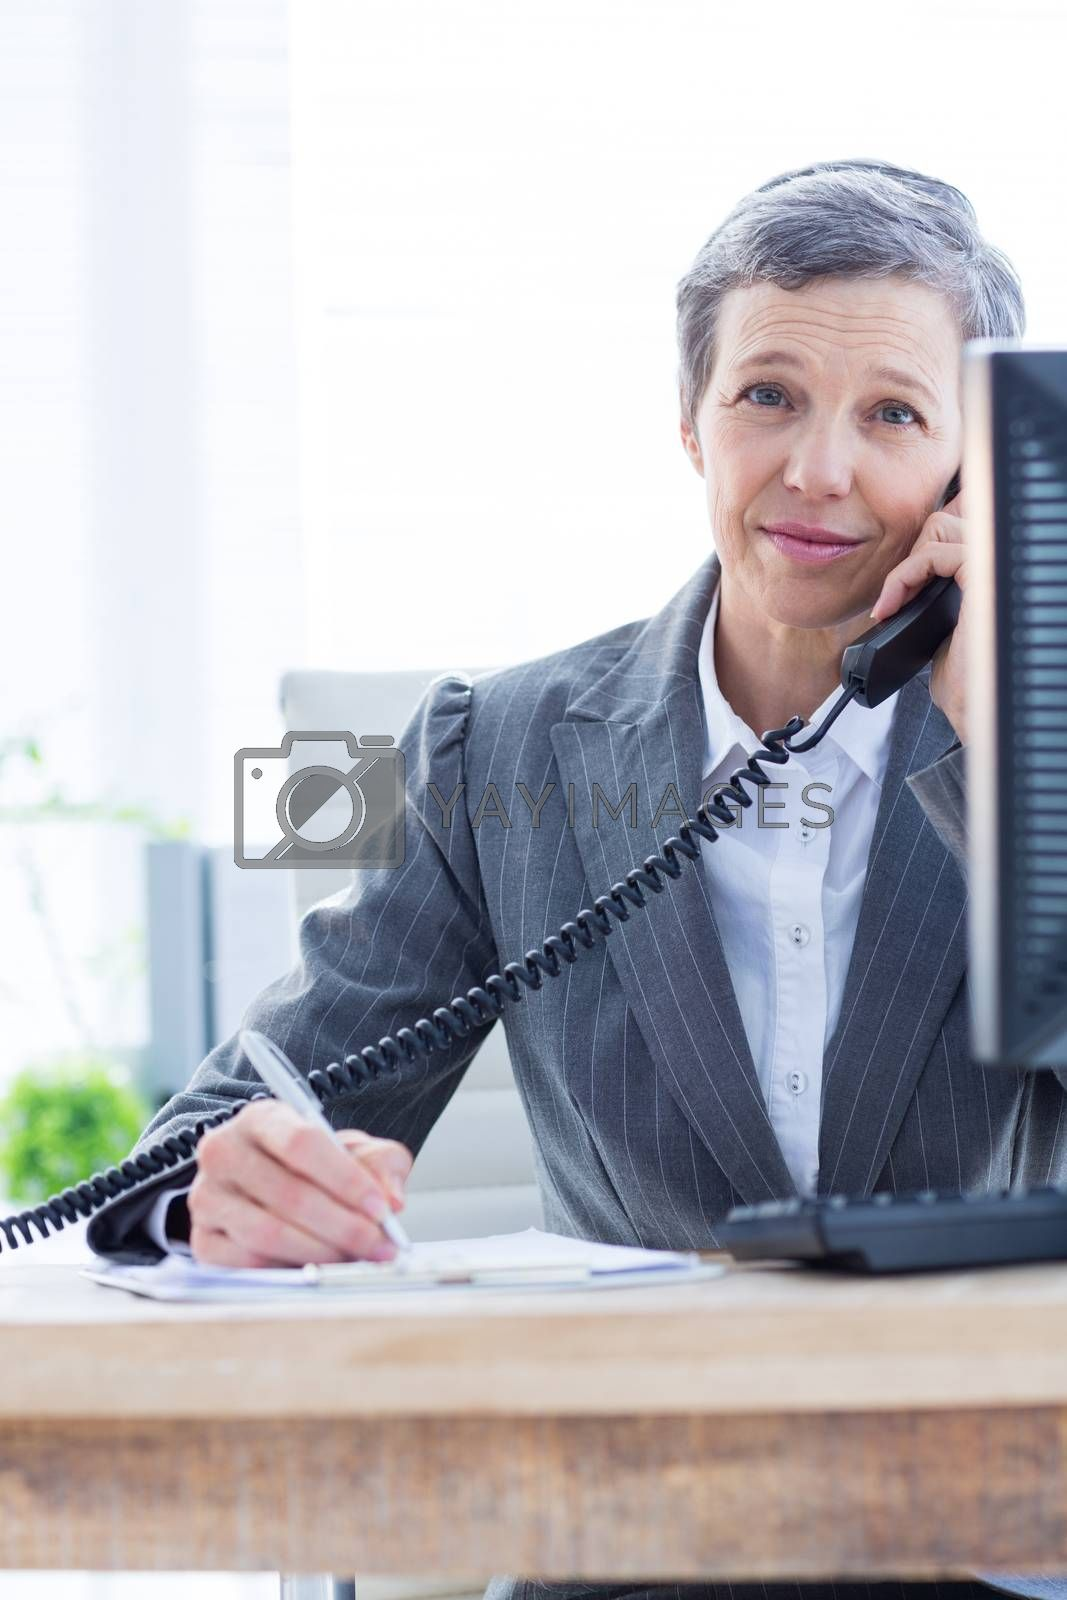 Royalty free image of Smiling portrait of a businesswoman phoning and writing by Wavebreakmedia